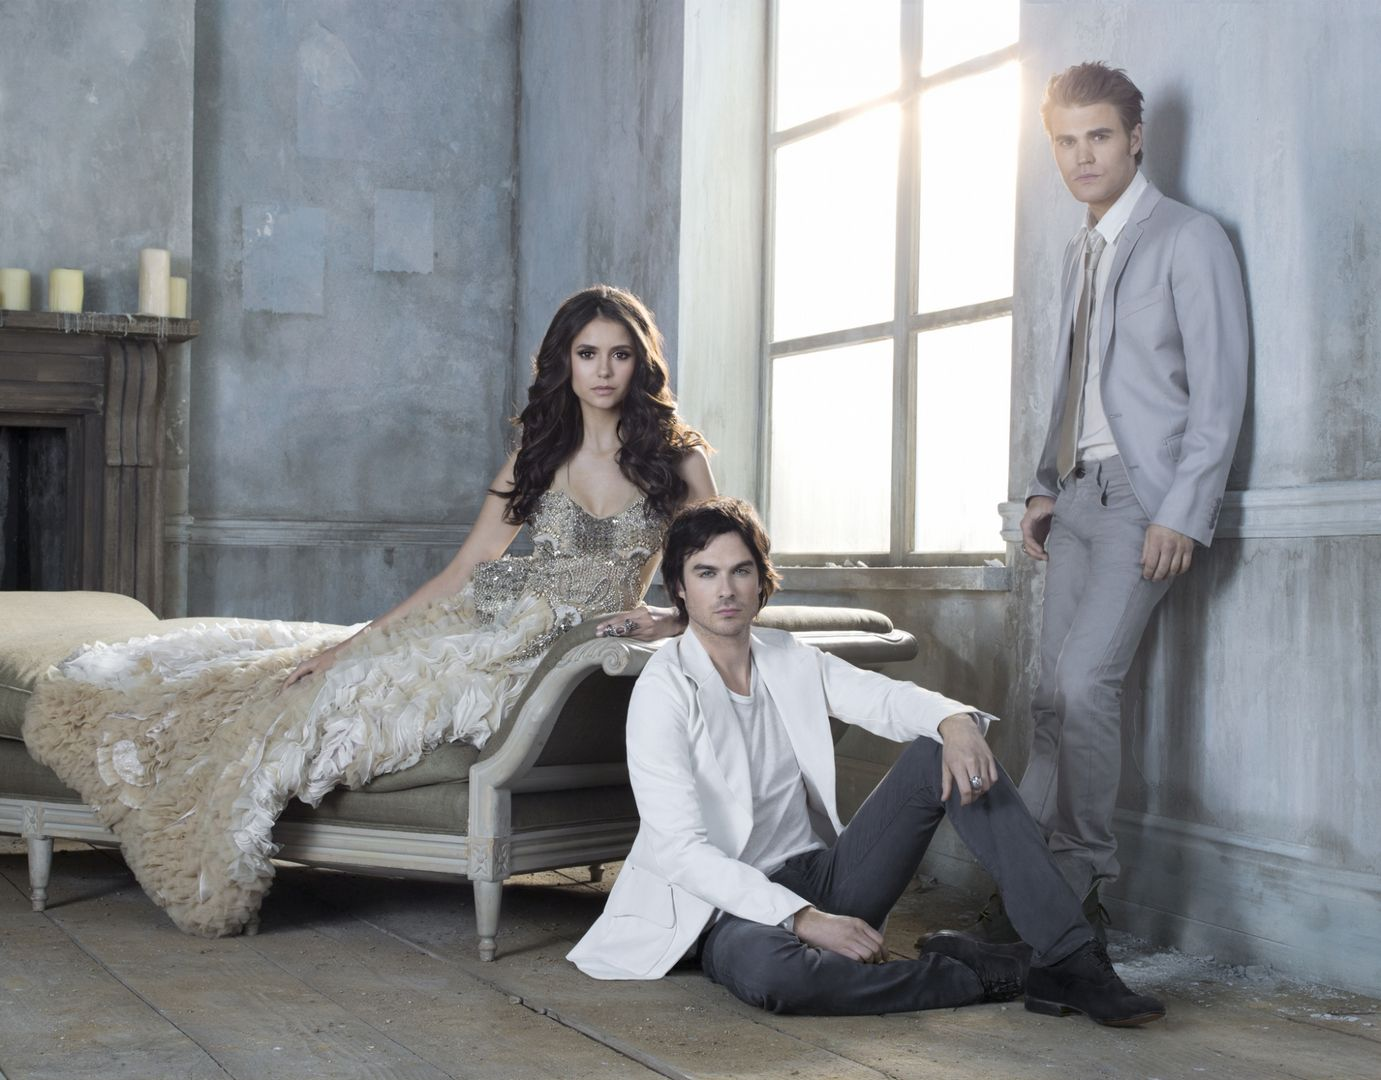 season 3 vampire diaries cast dating